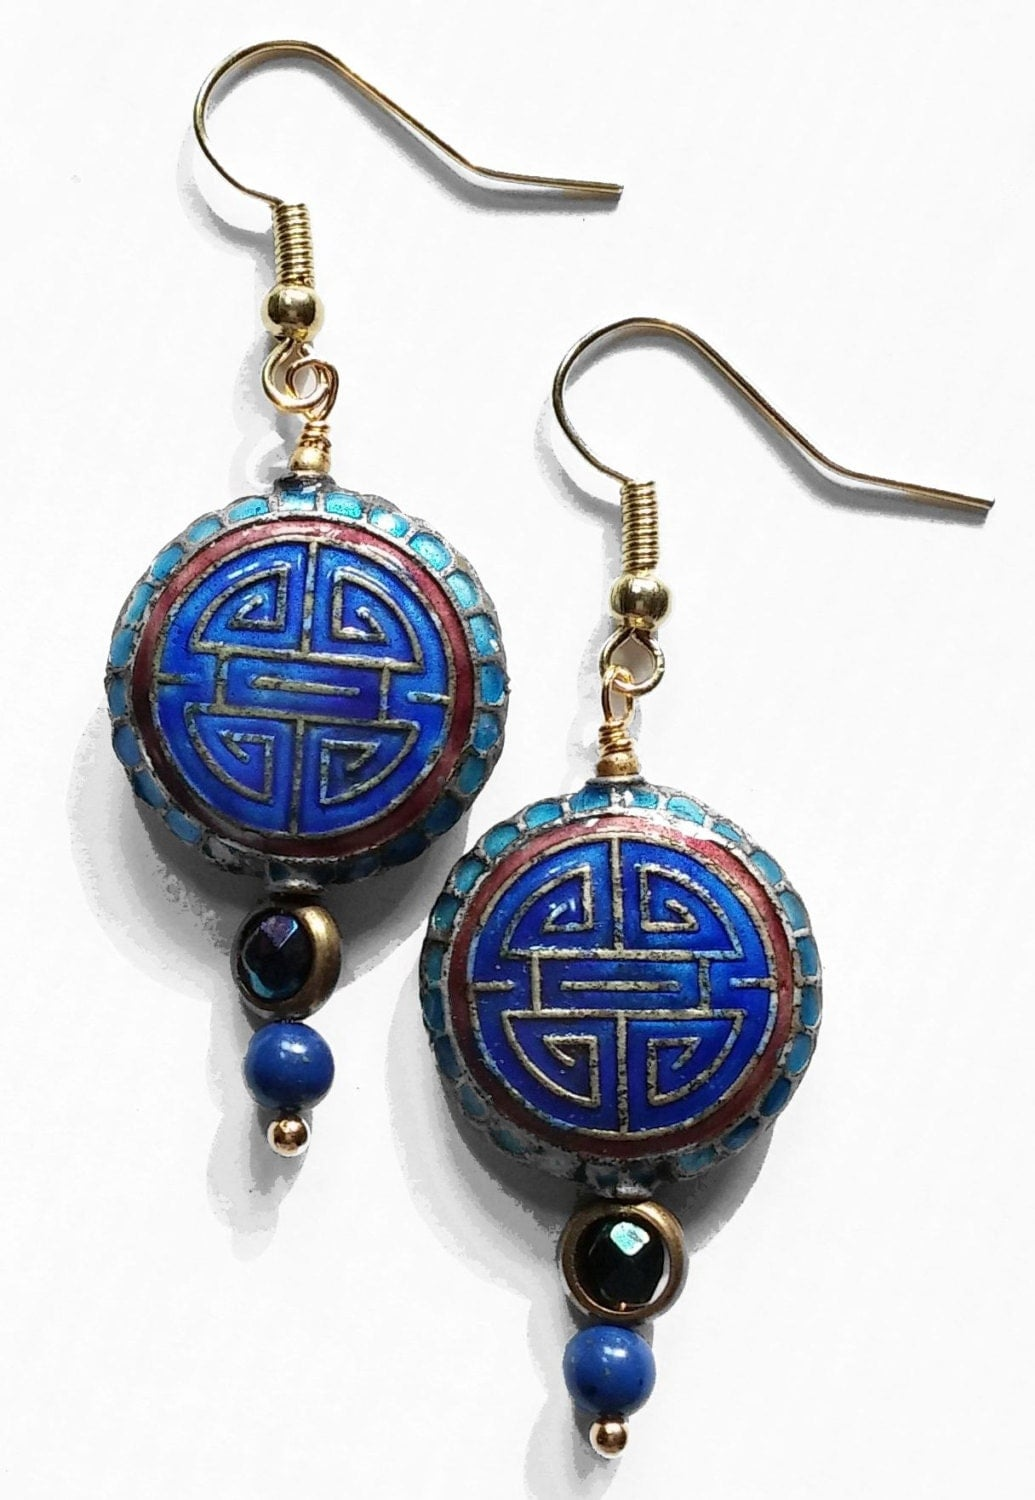 cloisonne style earrings